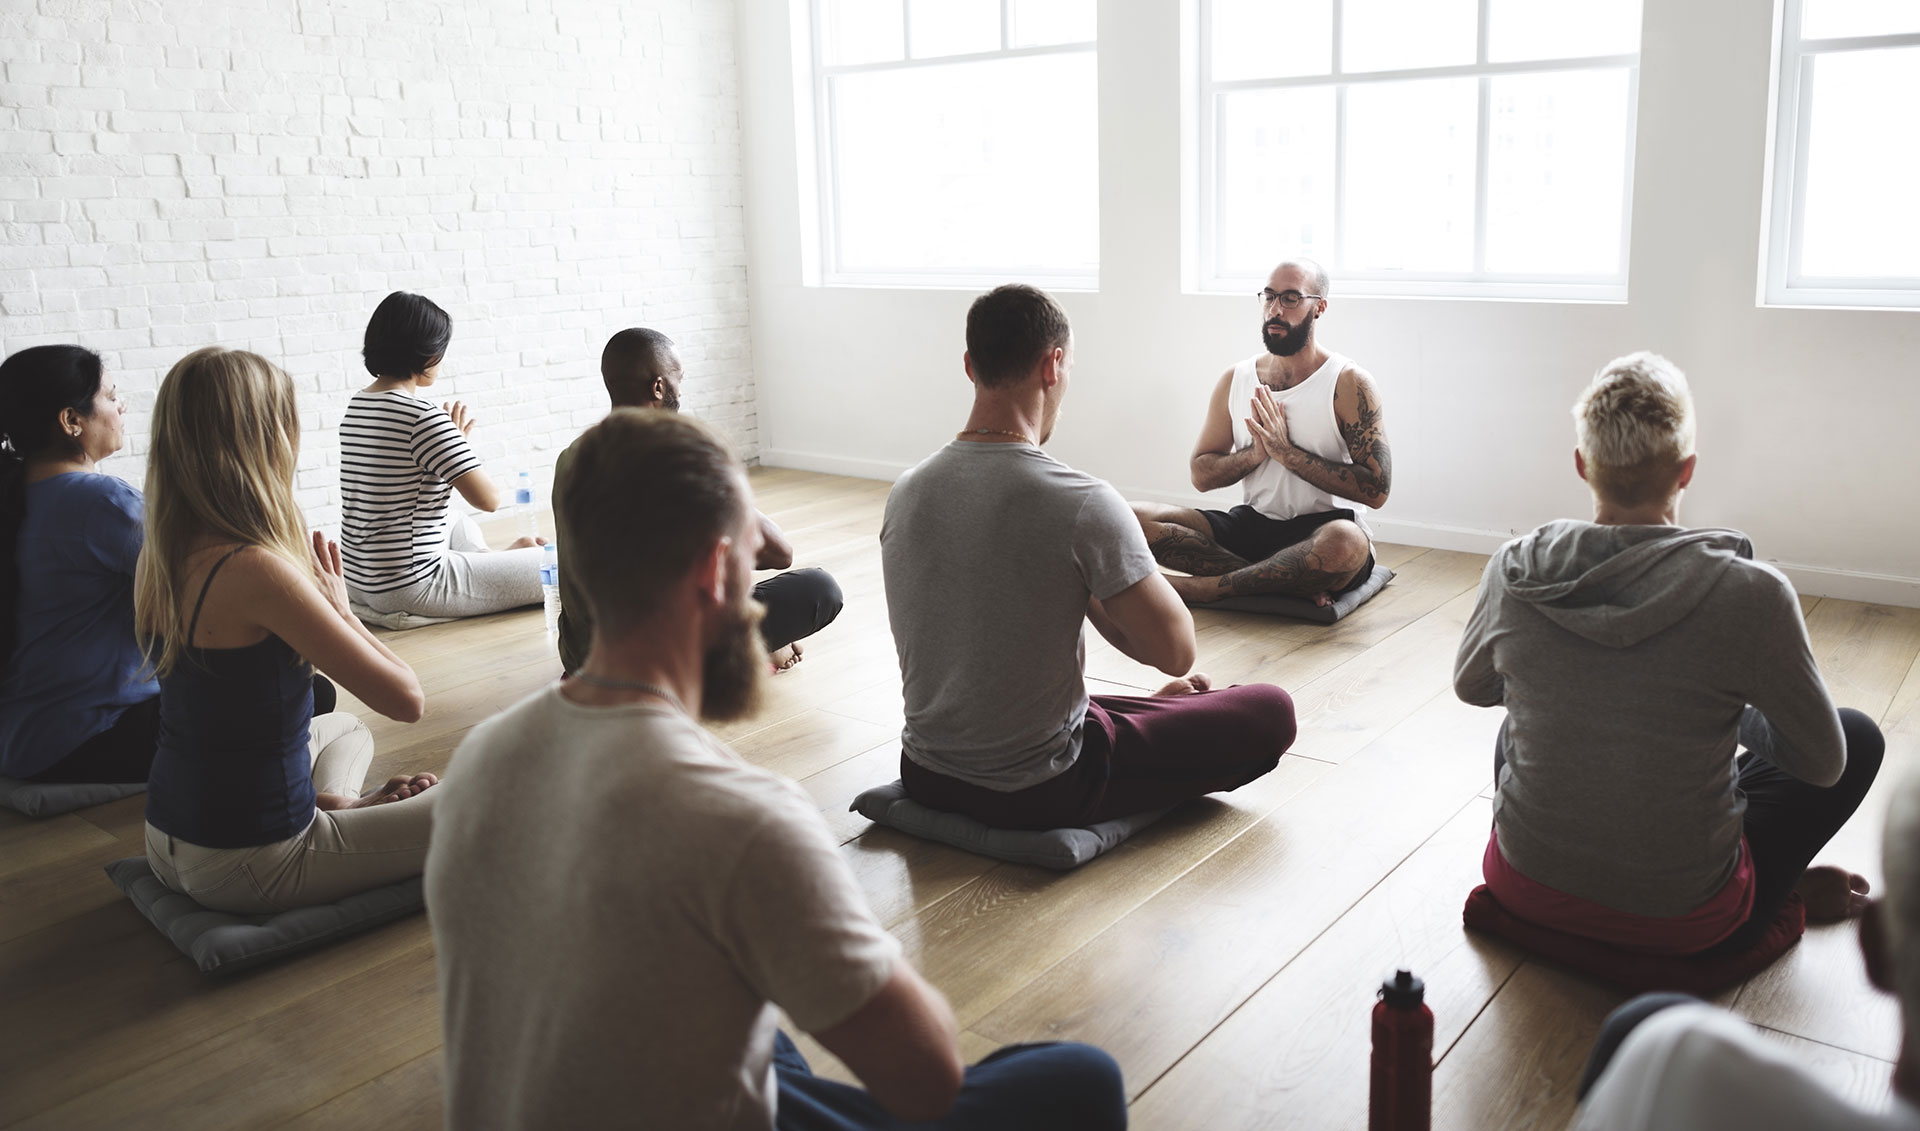 7-Tips-On-How-To-Design-The-Perfect-Yoga-Studio